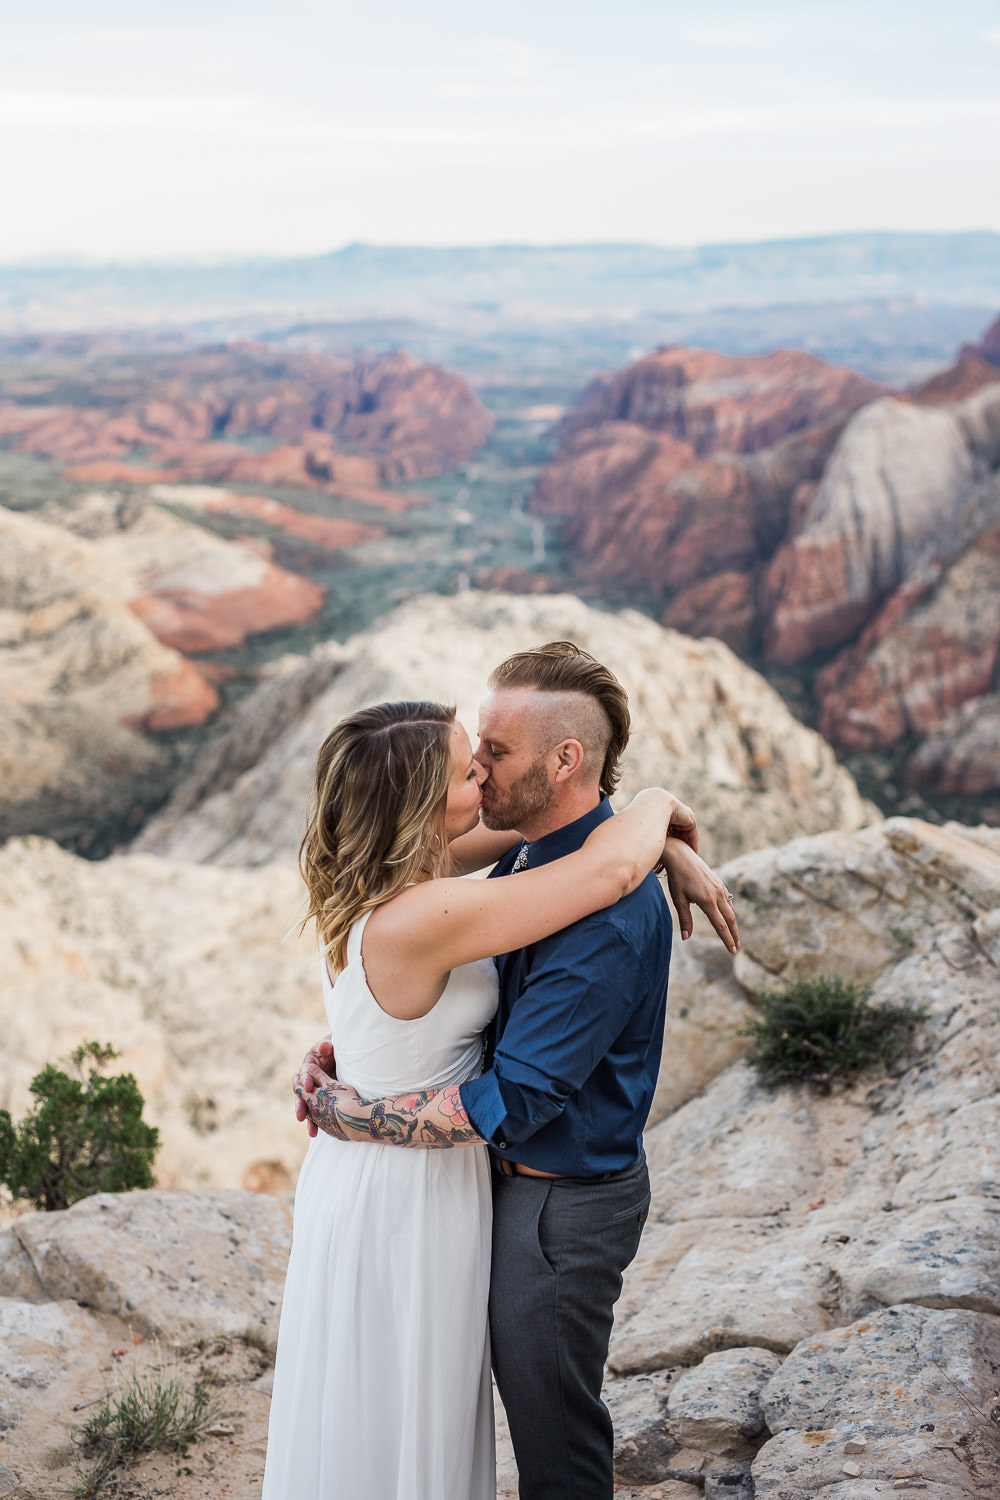 Epic cliffside vow renewal near Zion National Park in Southern Utah